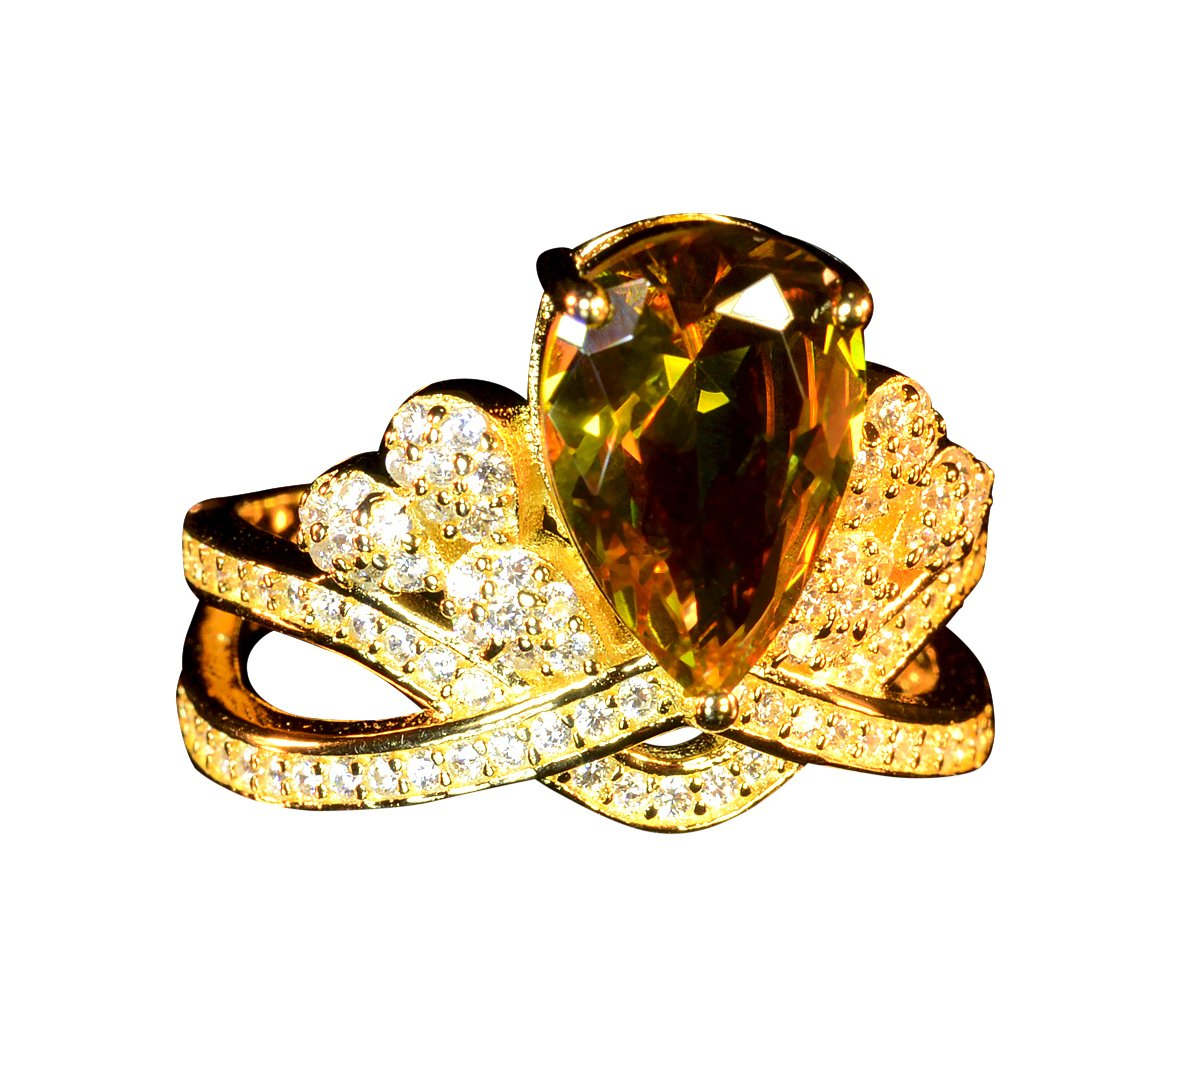 Silver ring alexandrite colors changing gem fine jewelry 925 sterling silver micro paved speccially designed classic pear stone shape fancy diamond style engagement ring (Yellow-gold, 7)